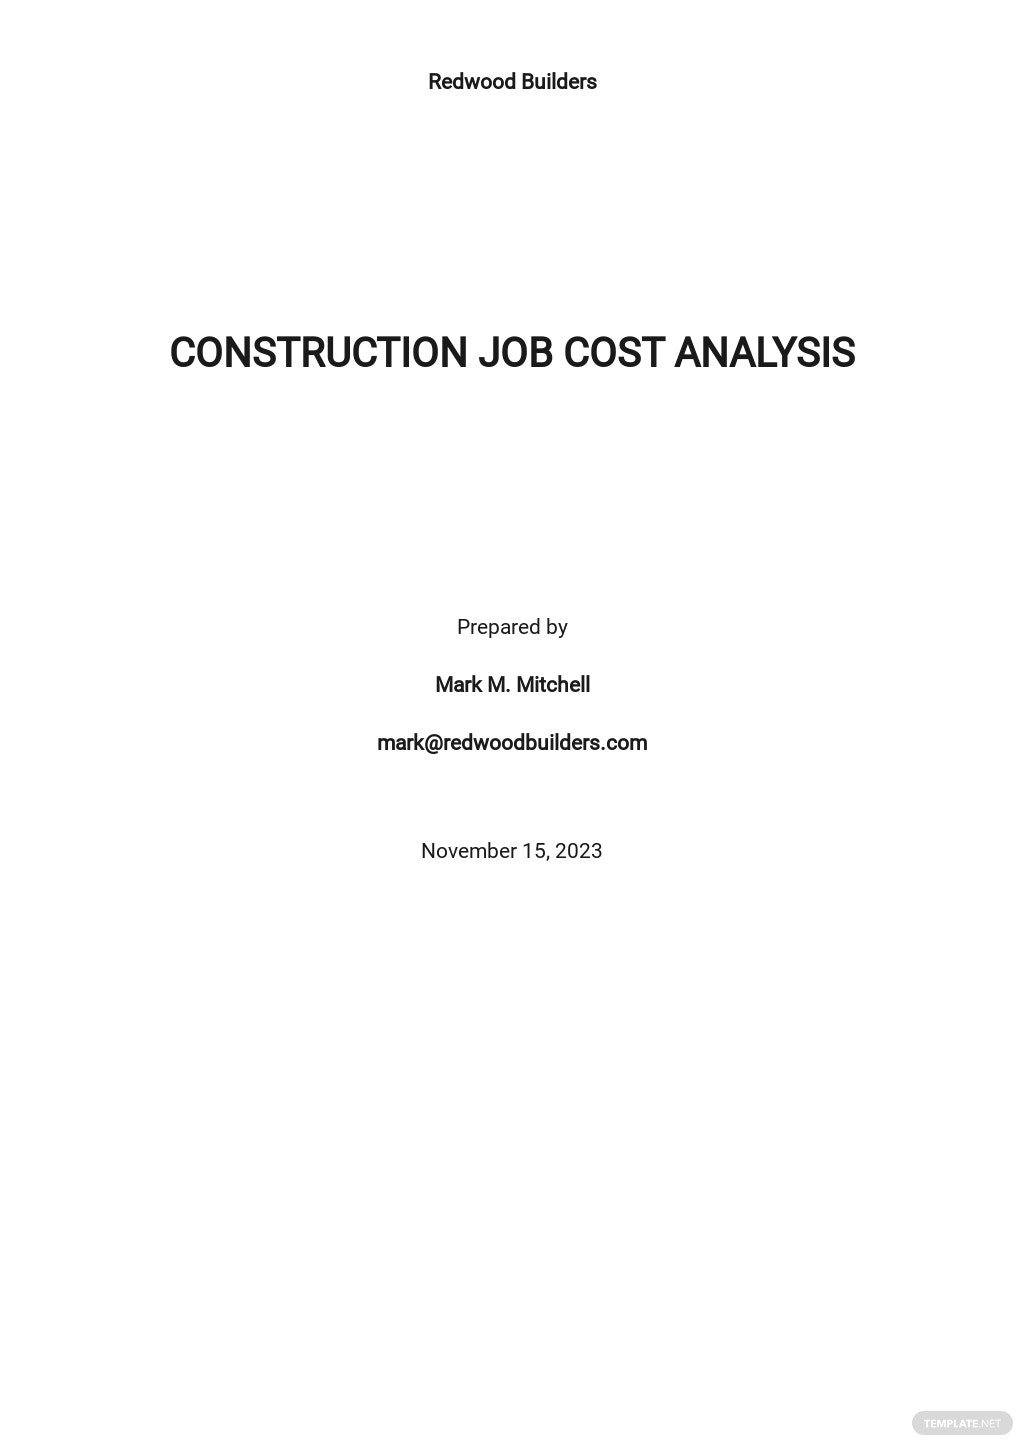 Construction Job Cost Analysis Template